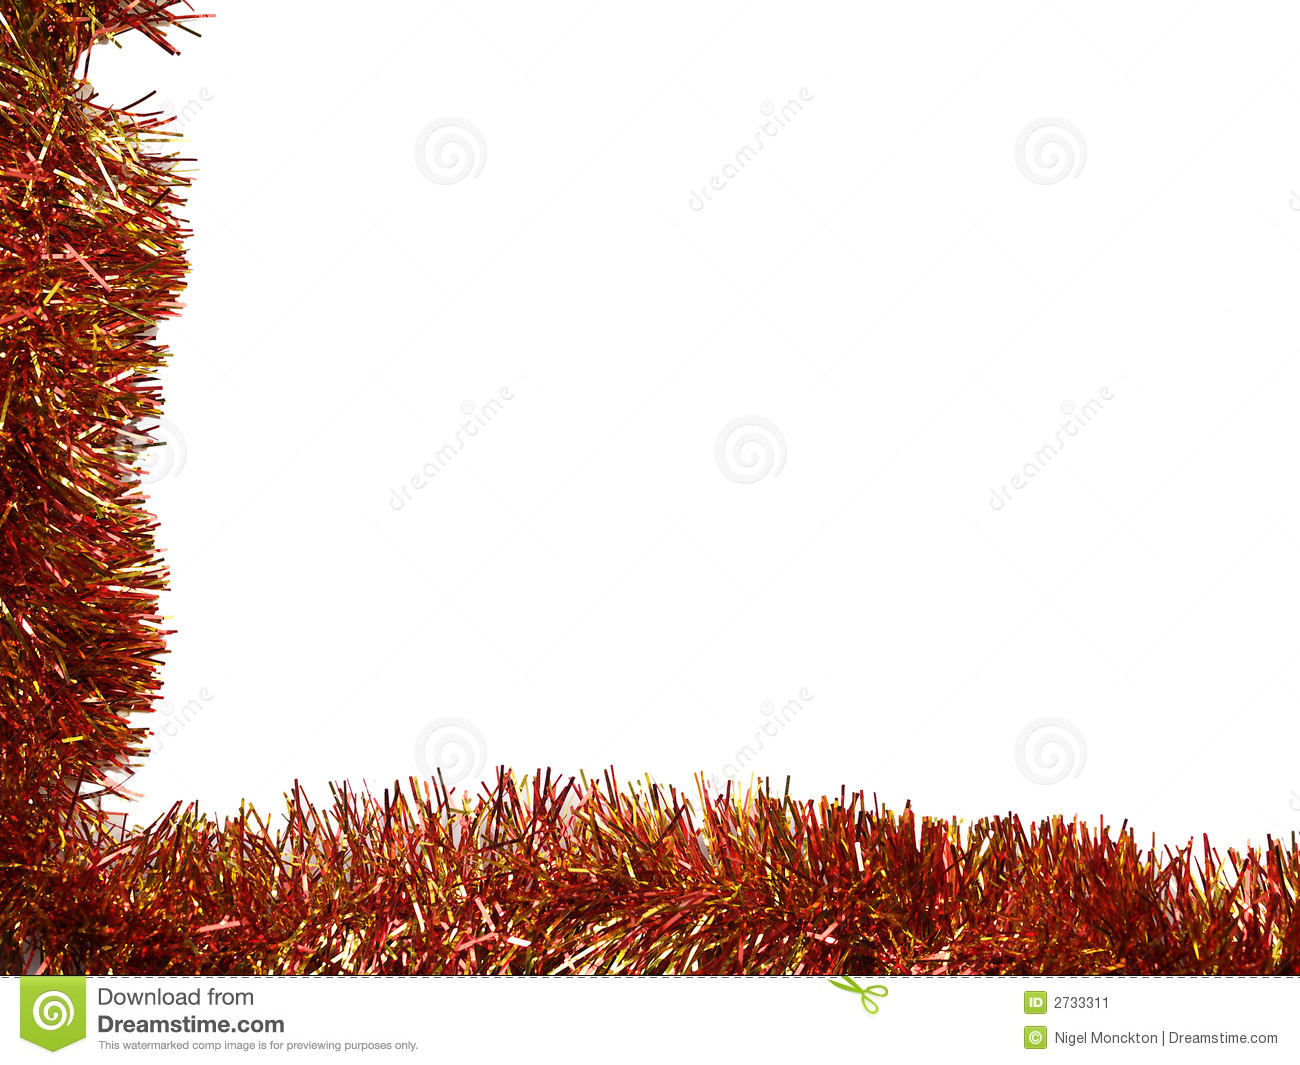 Tinsel Border tinsel borders collection stock image - image: 2733311